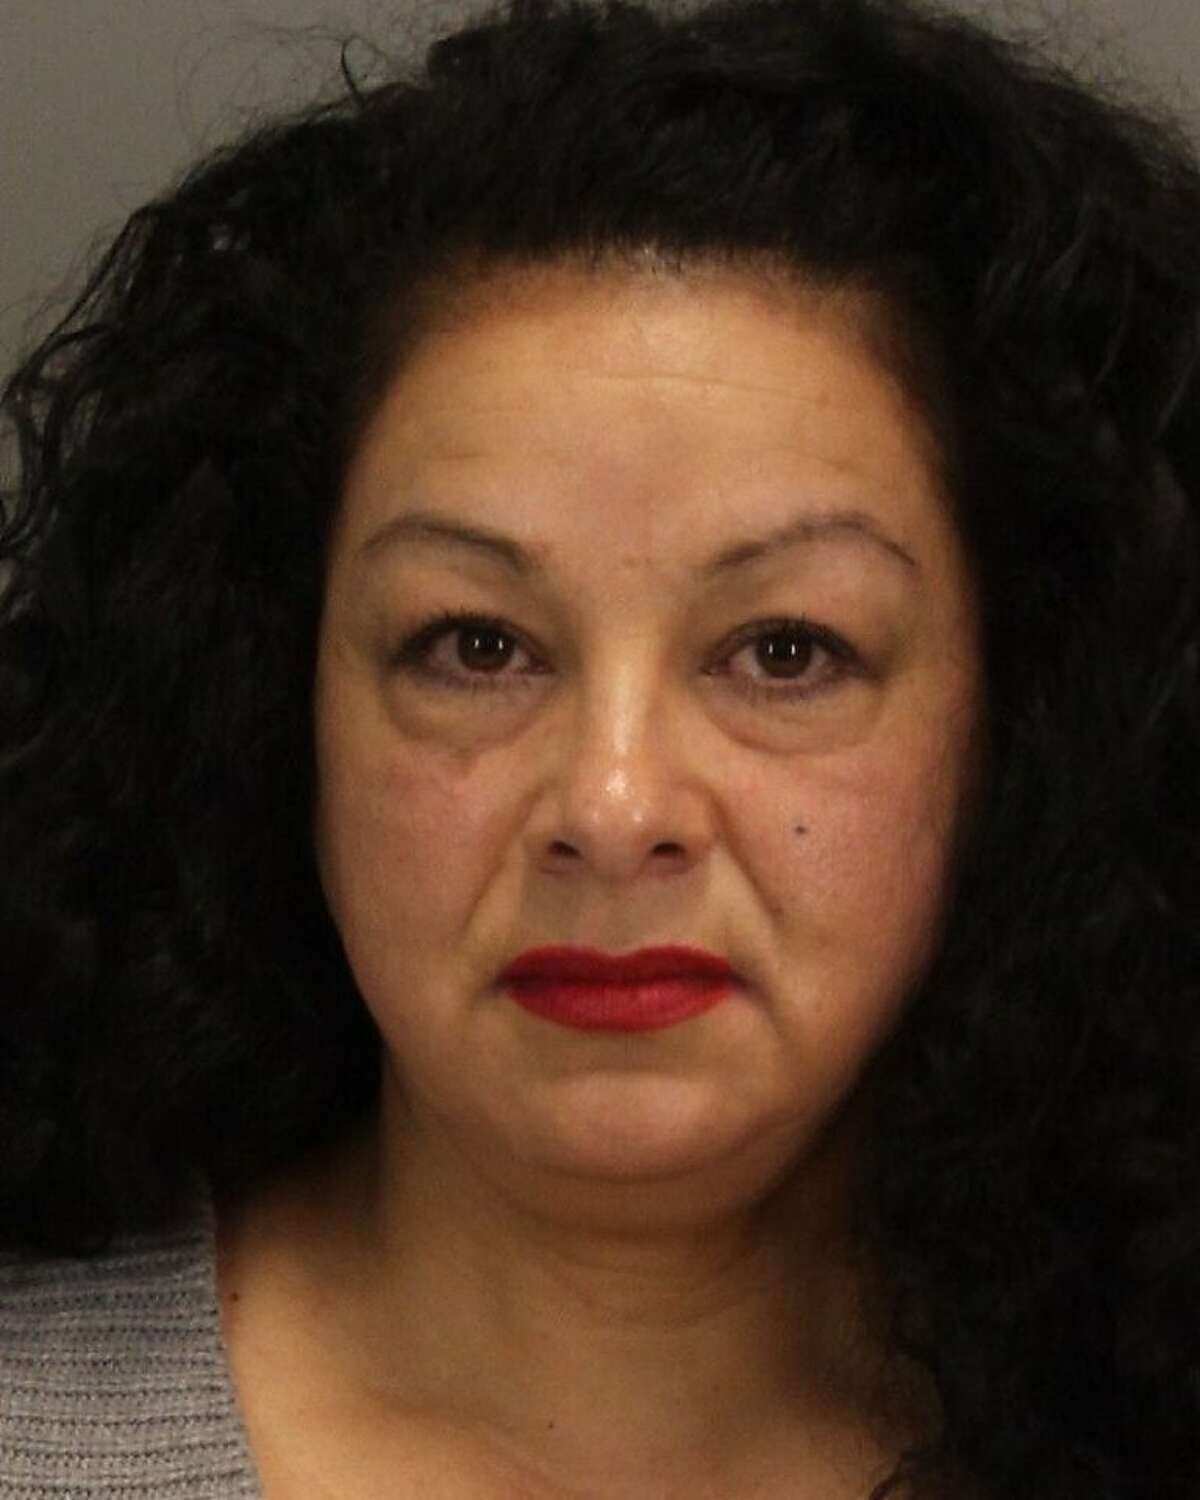 Anna Ayala, who served a prison stint for concocting a story about finding part of a finger in a bowl of chili at a Wendy's in San Jose. She has now been charged in a case in which she allegedly tried to frame a man for her son's accidental shooting.